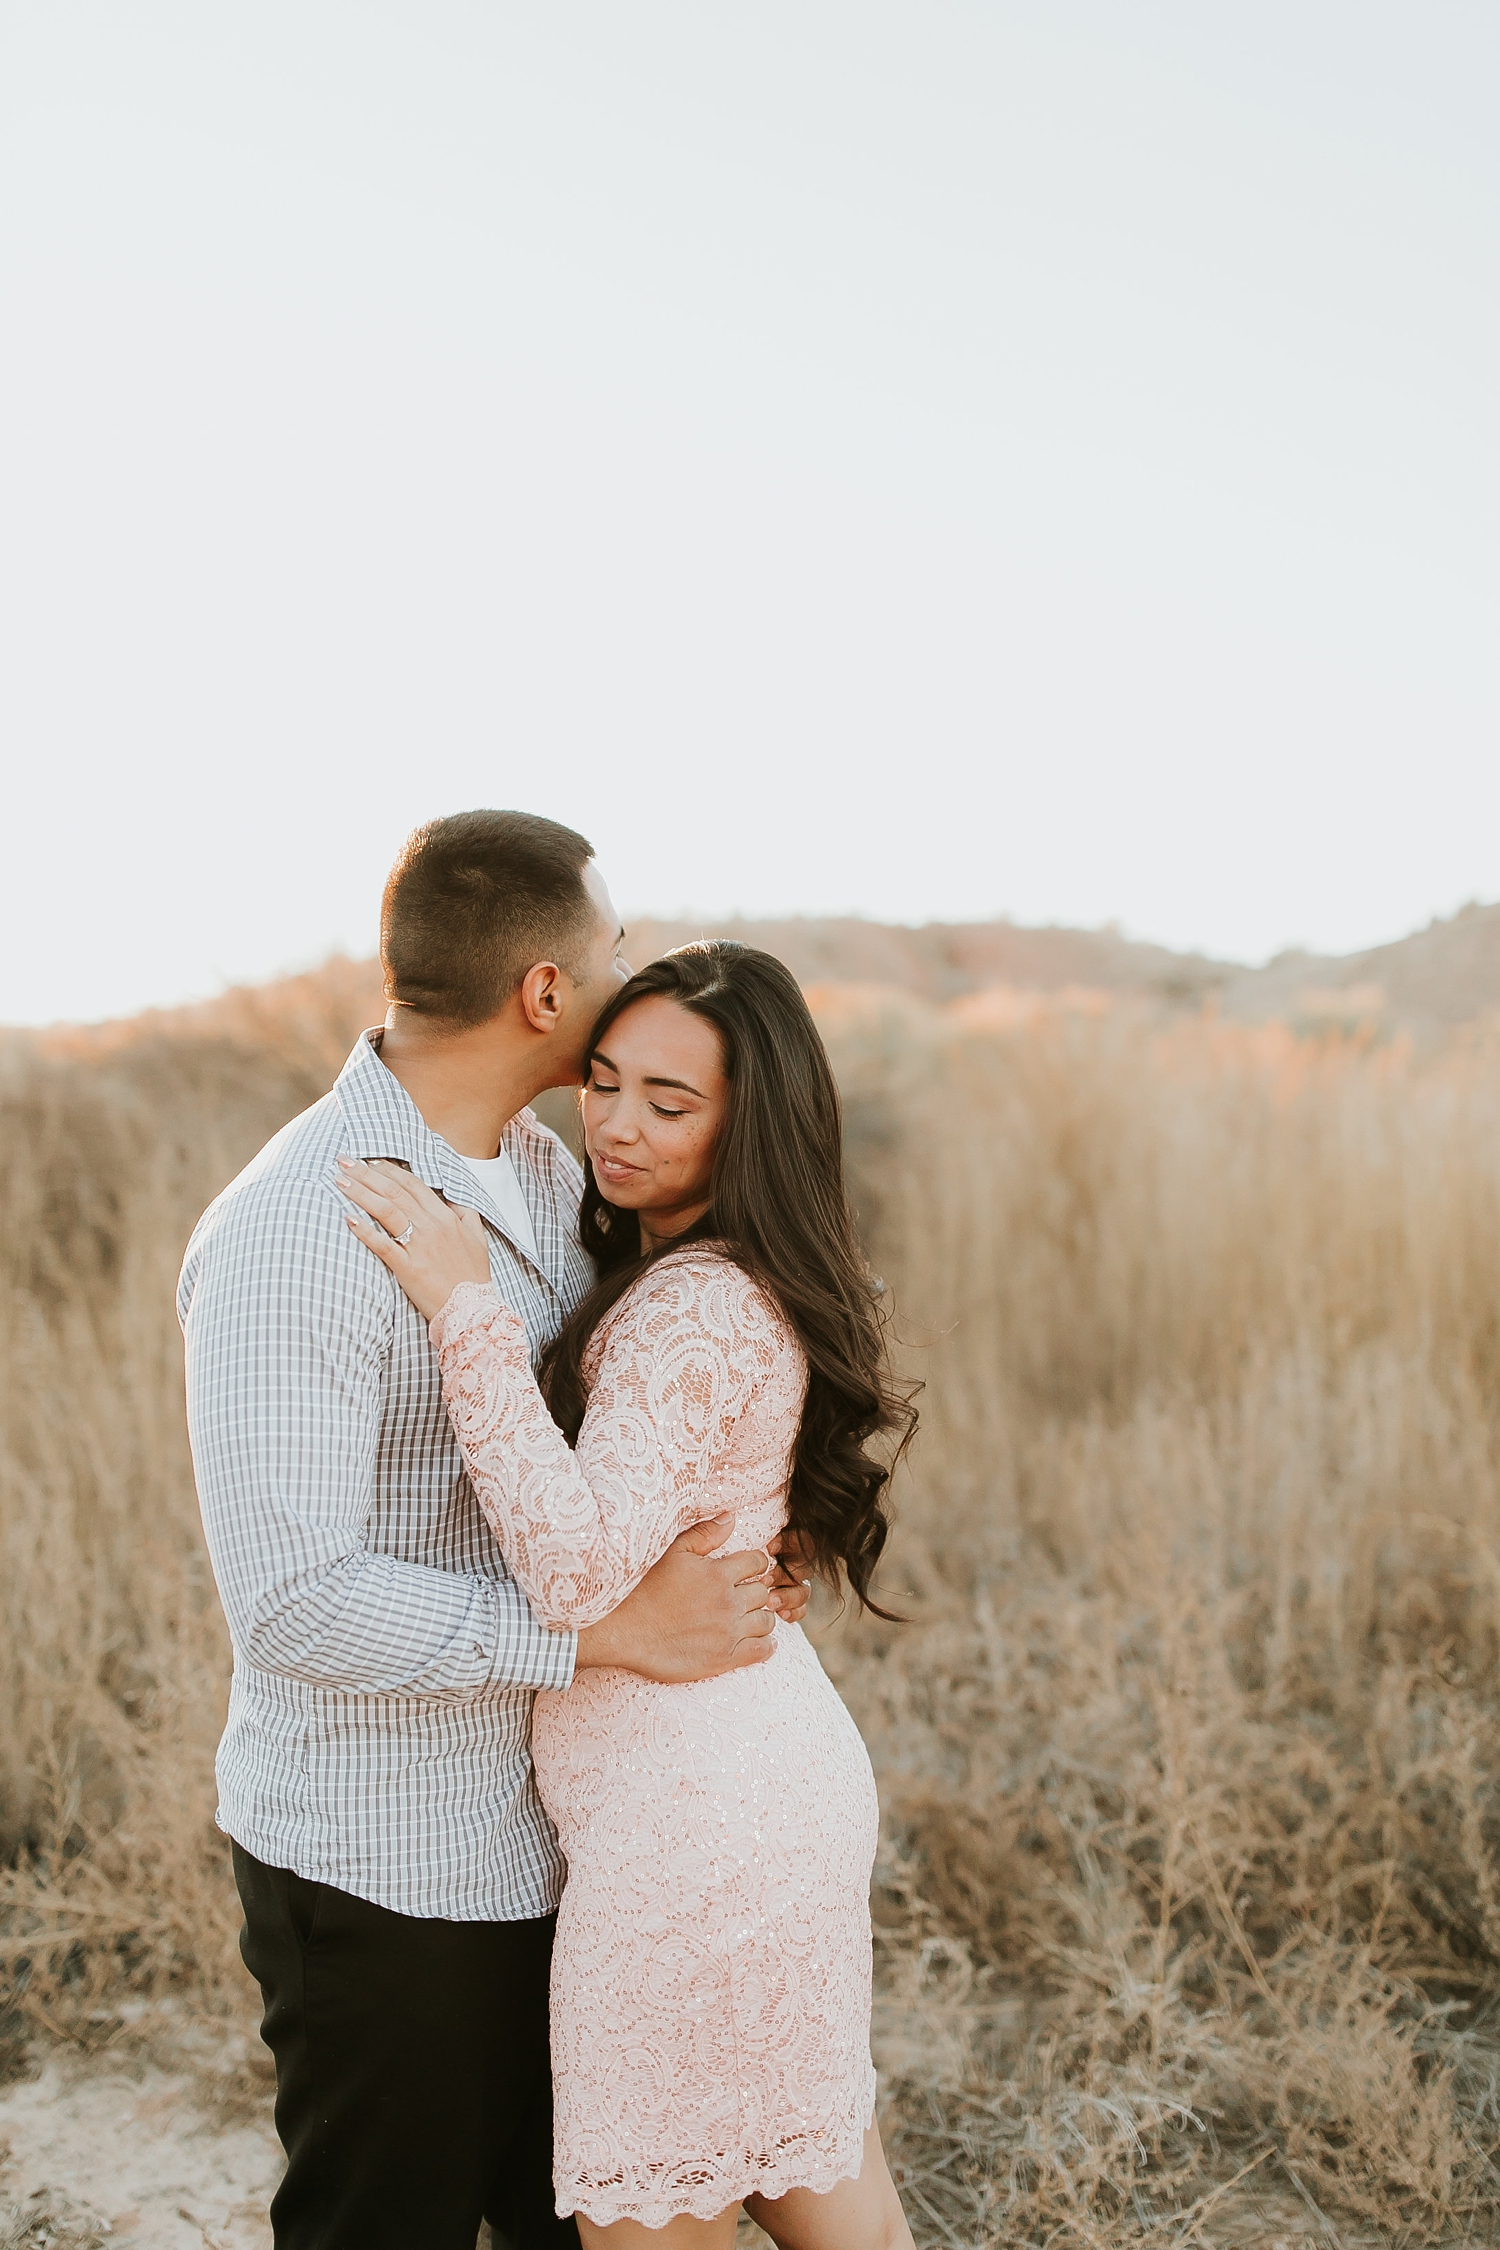 Alicia+lucia+photography+-+albuquerque+wedding+photographer+-+santa+fe+wedding+photography+-+new+mexico+wedding+photographer+-+albuquerque+winter+engagement+session_0012.jpg